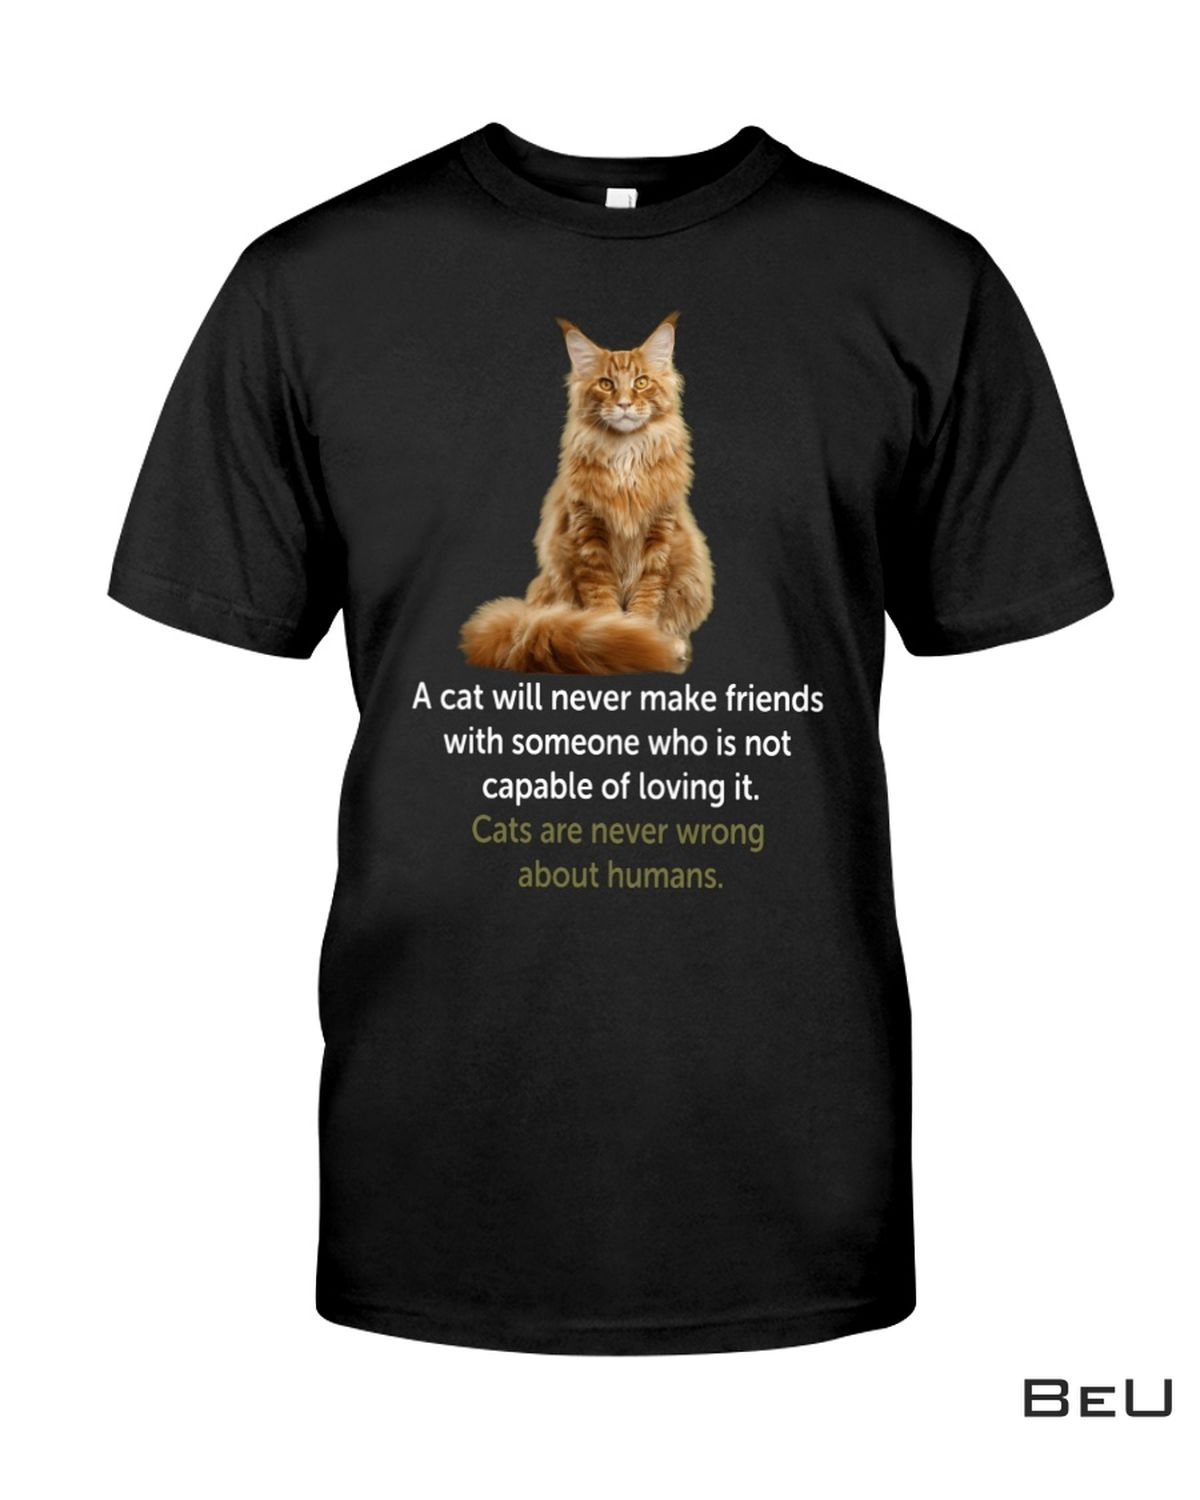 A Cat Will Never Make Friends With Someone Who Is Not Capable Of Loving It Shirt, hoodie, tank top